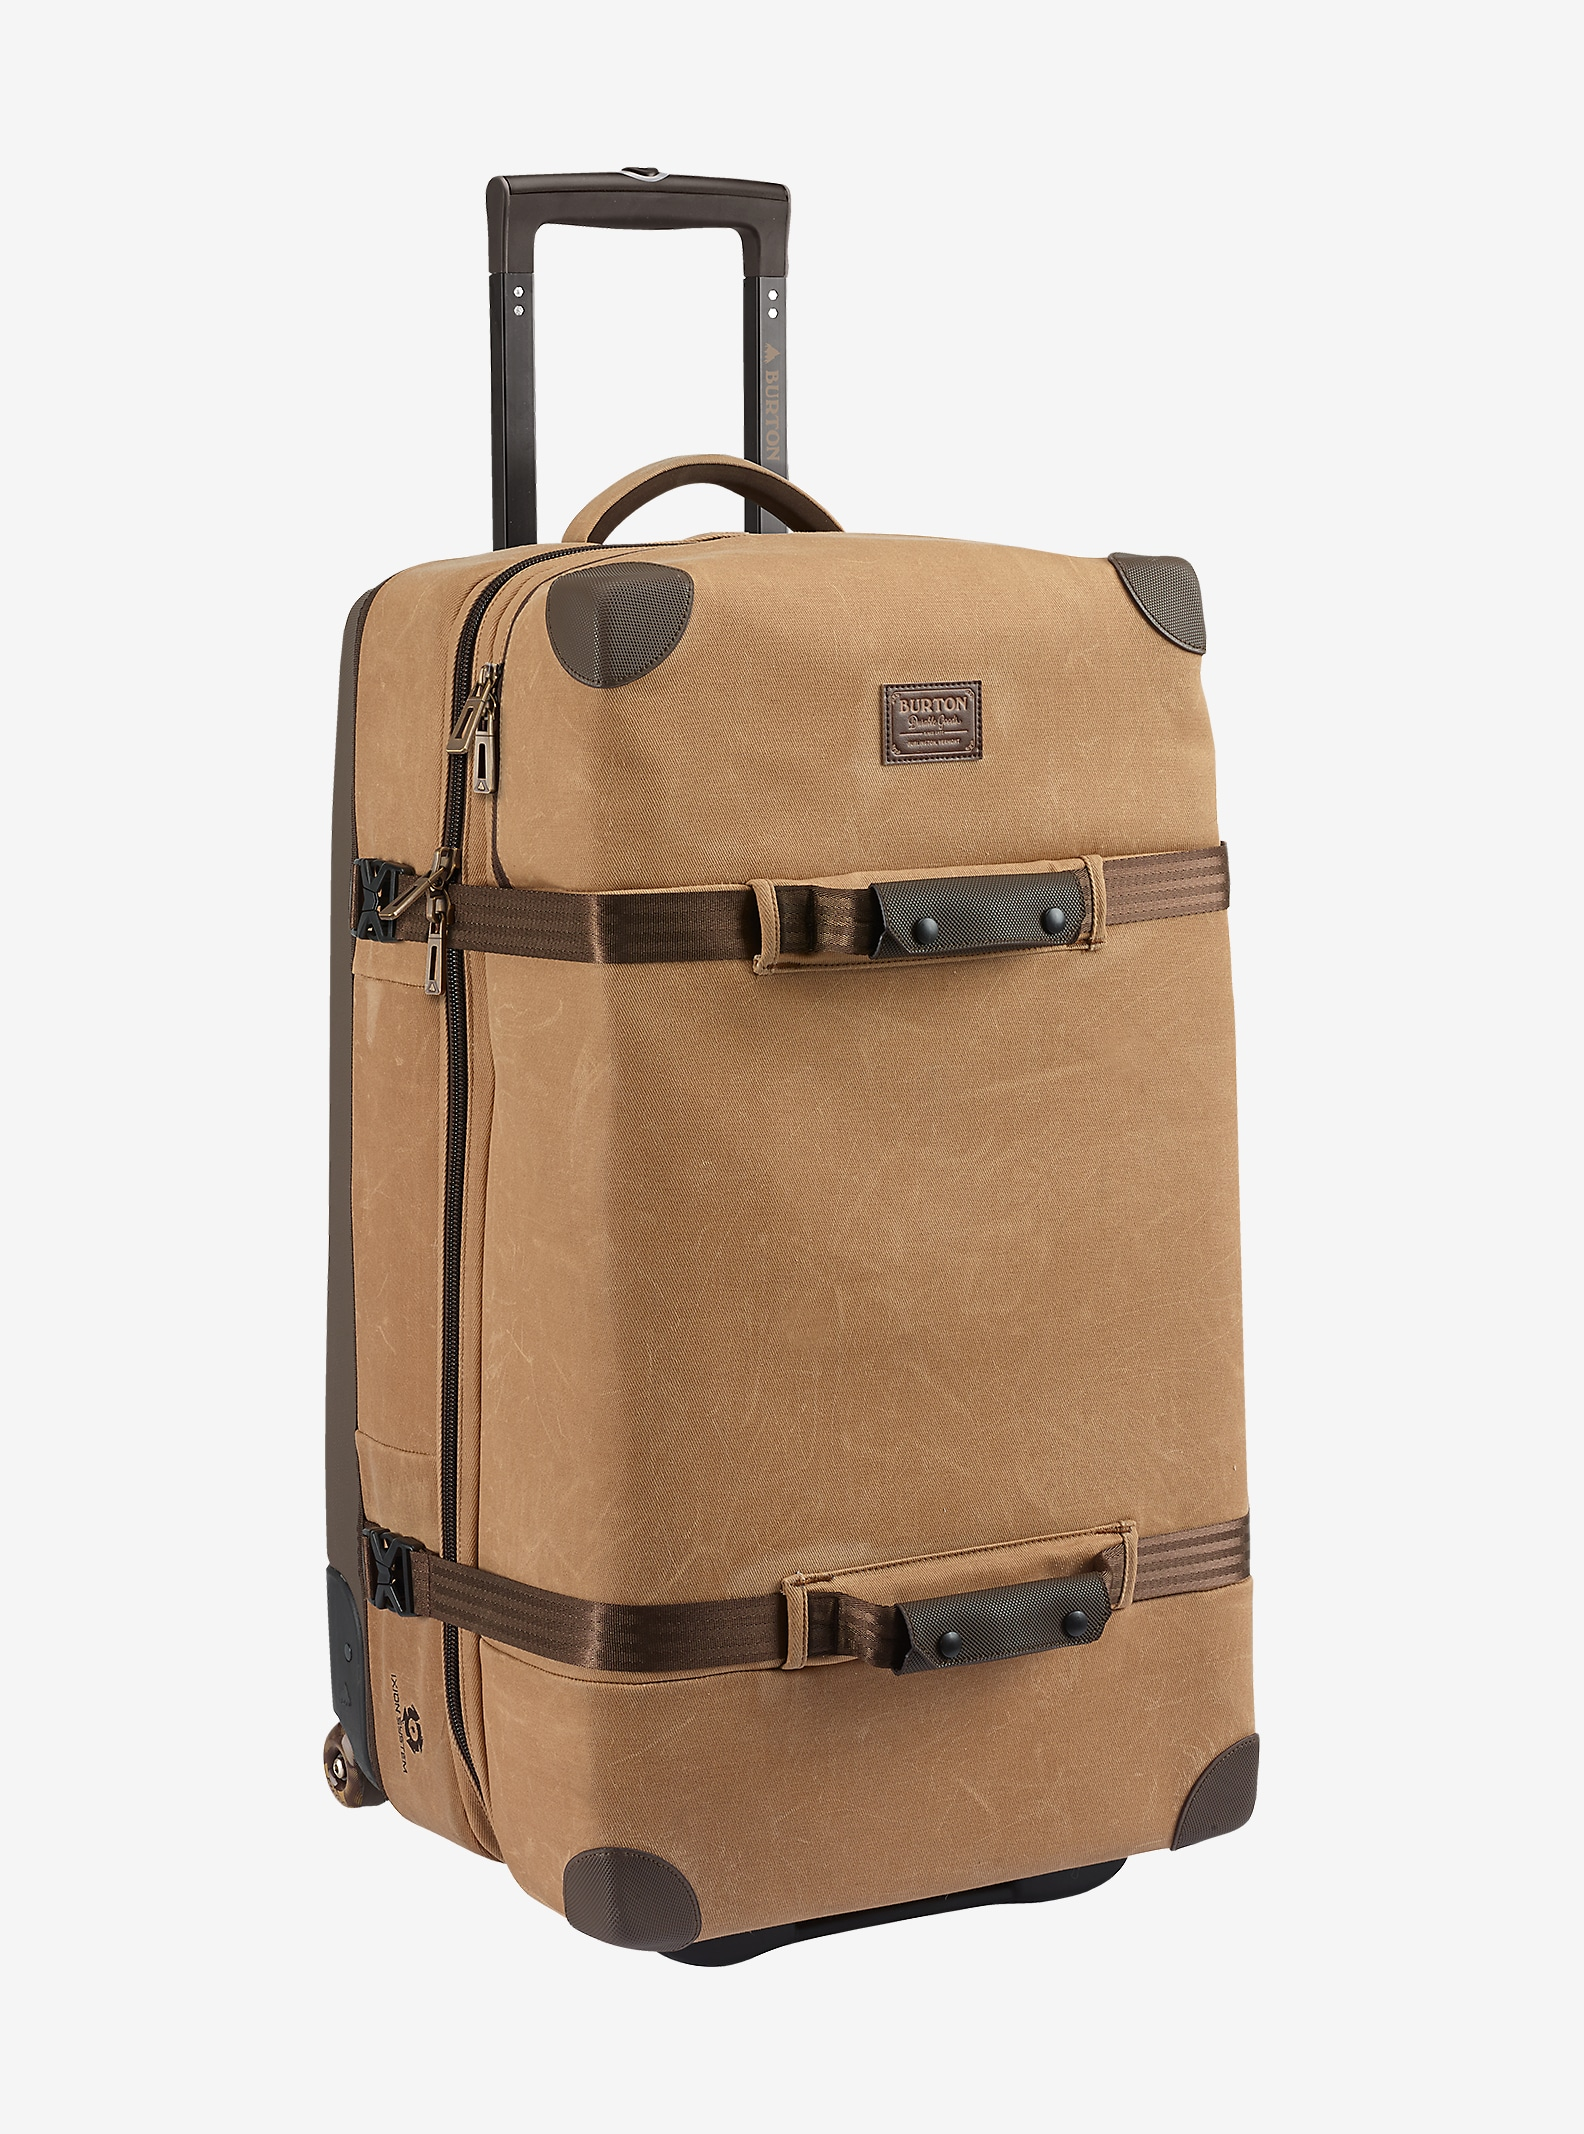 Burton Wheelie Sub Travel Bag shown in Beagle Brown Waxed Canvas